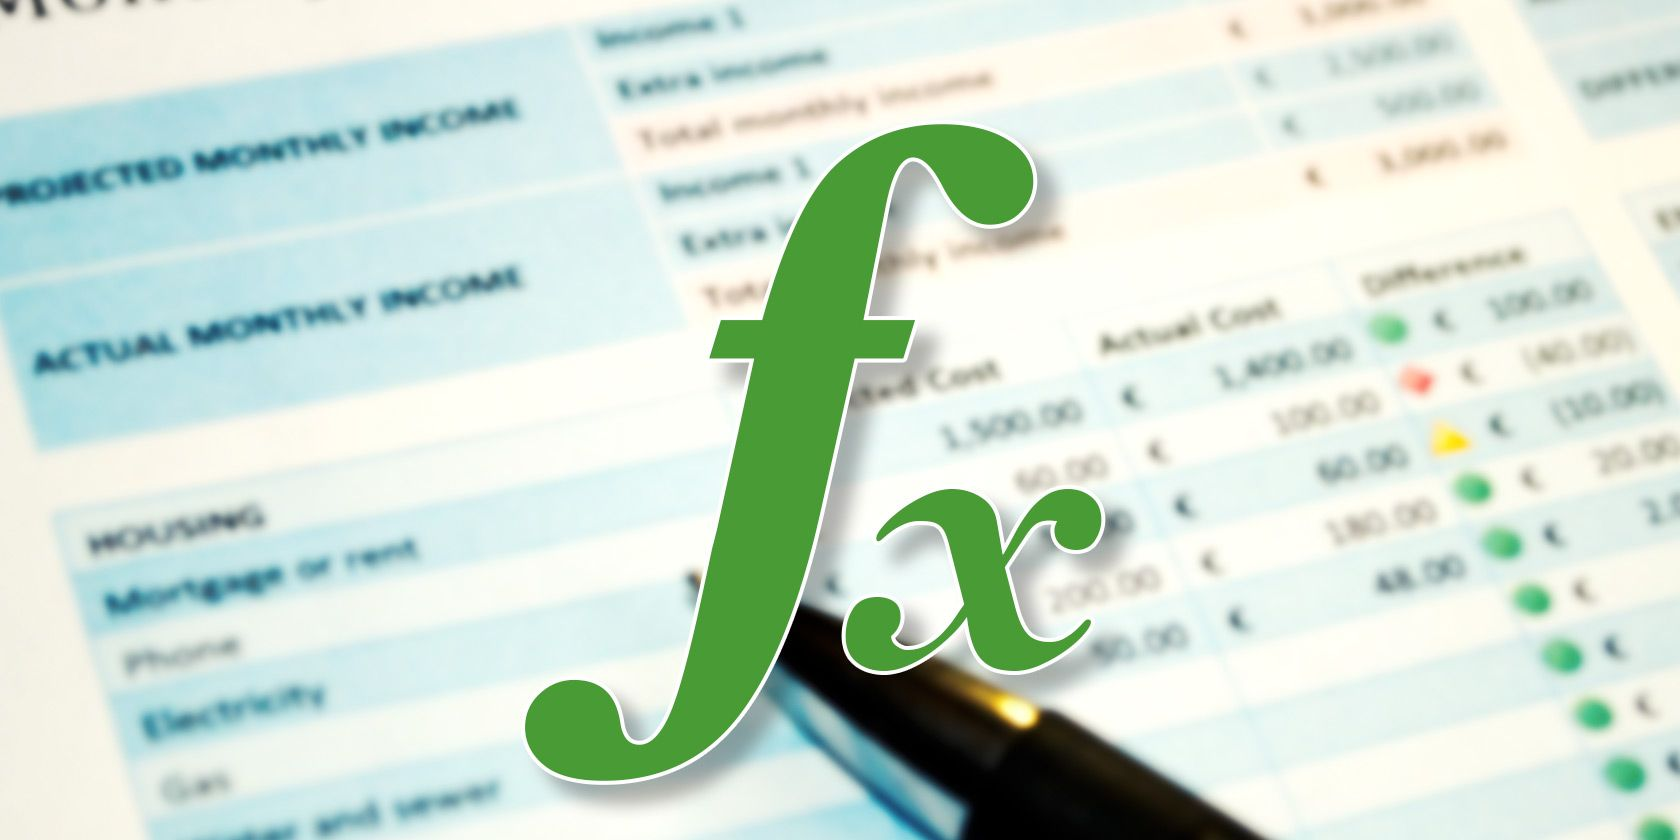 20 Excel Formulas That Will Help You Solve Real Life Problems